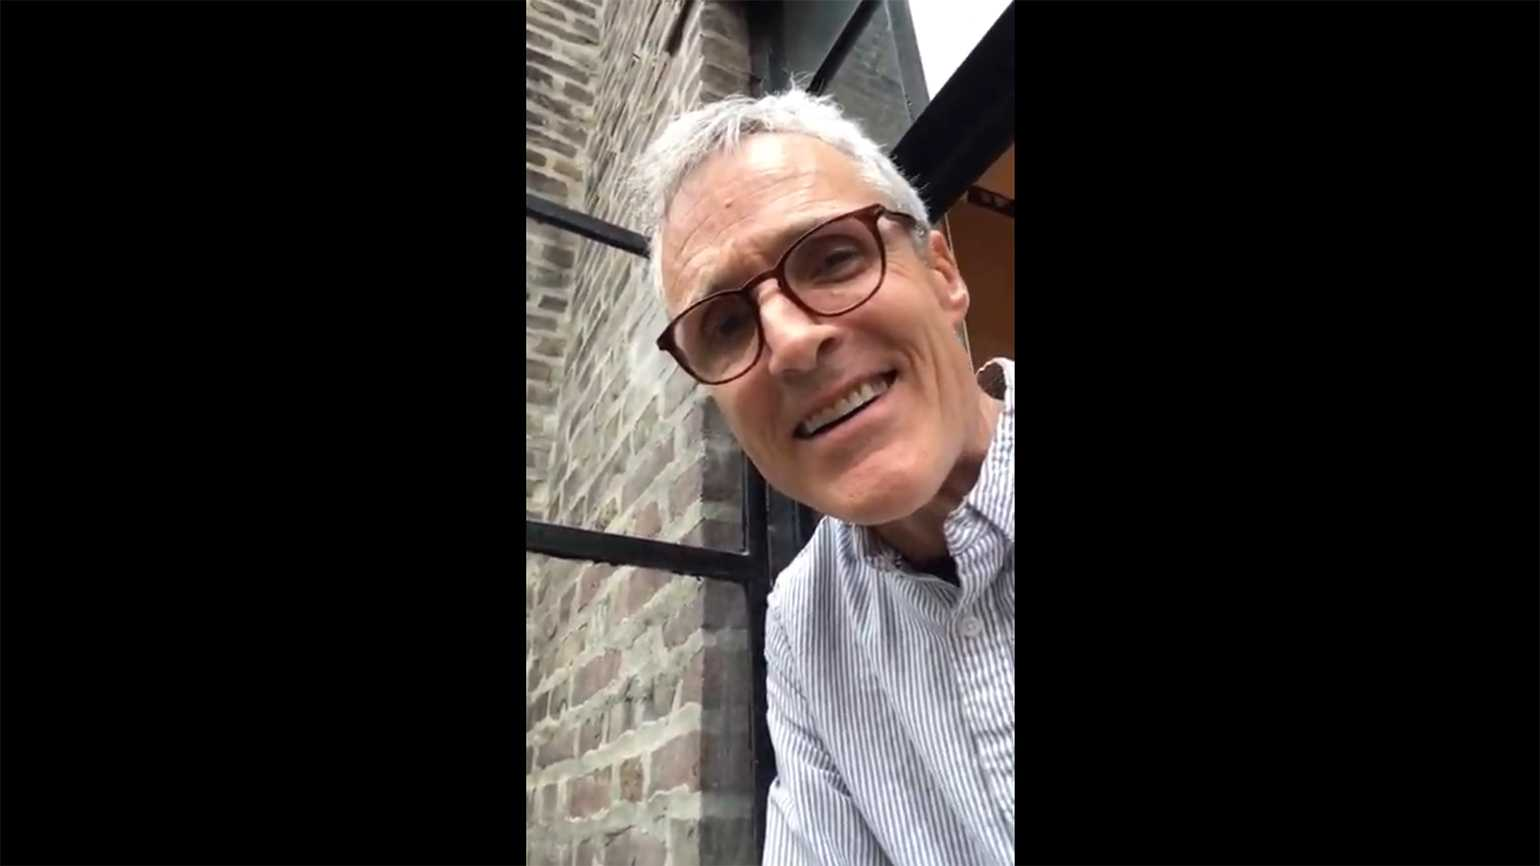 Rick Hamlin, from the window of his NYC apartmejnt